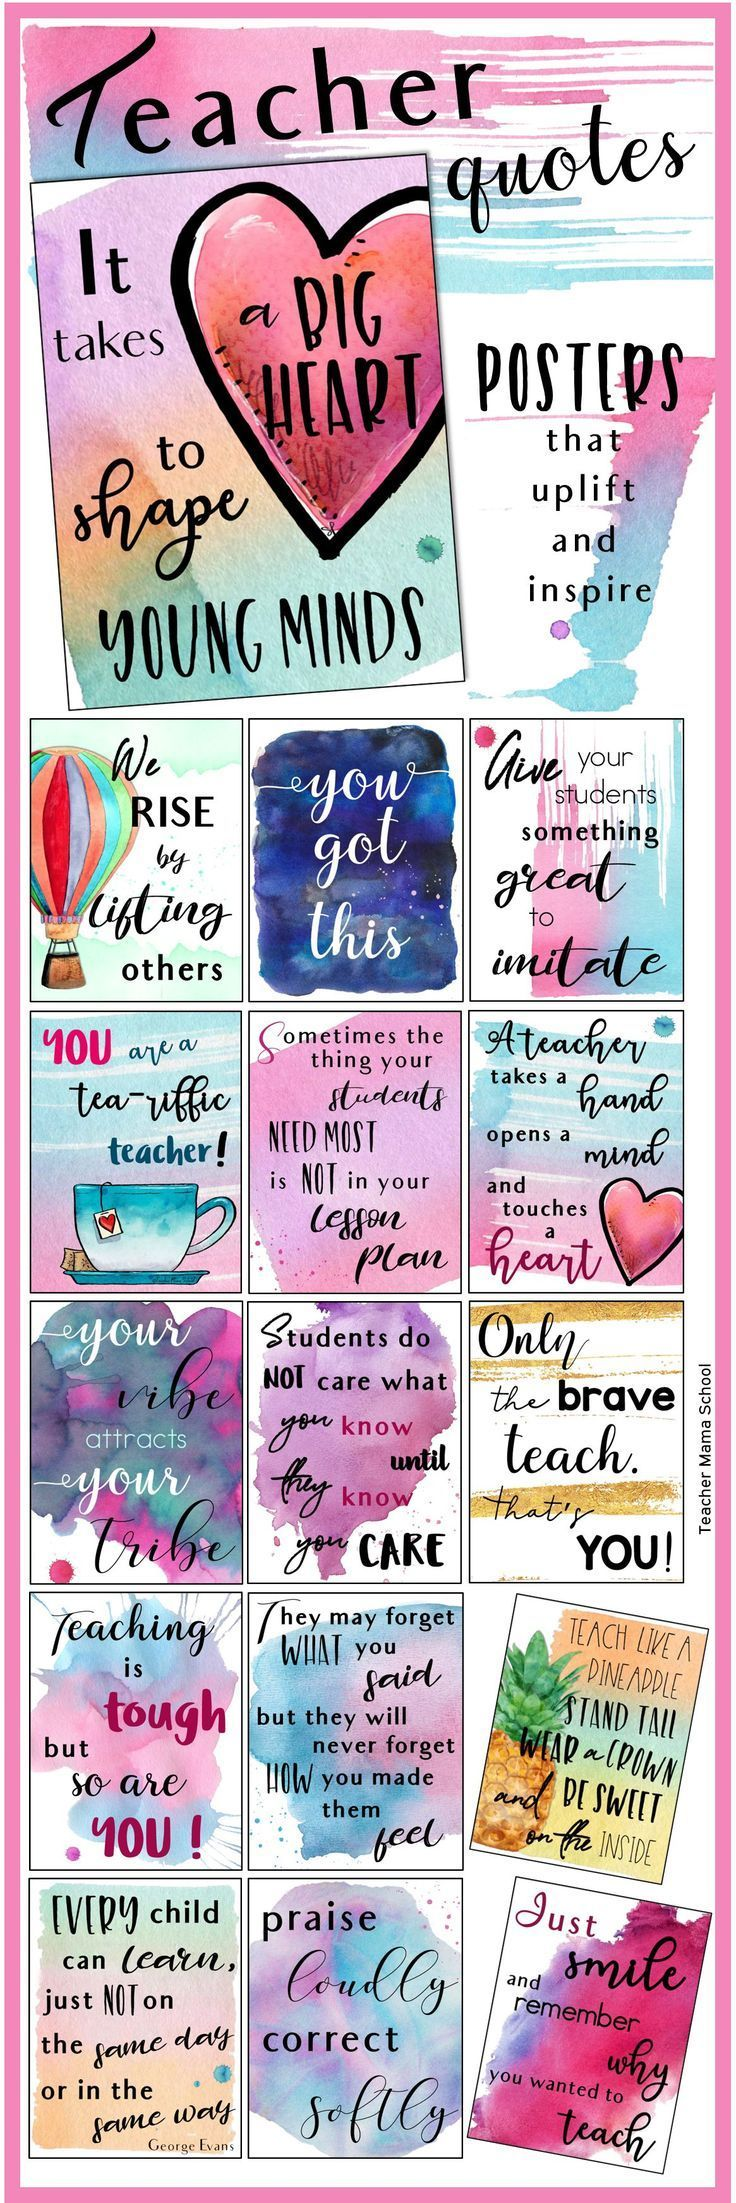 Teacher Quotes Posters to uplift, inspire and motivate teachers! In a beautiful watercolor theme